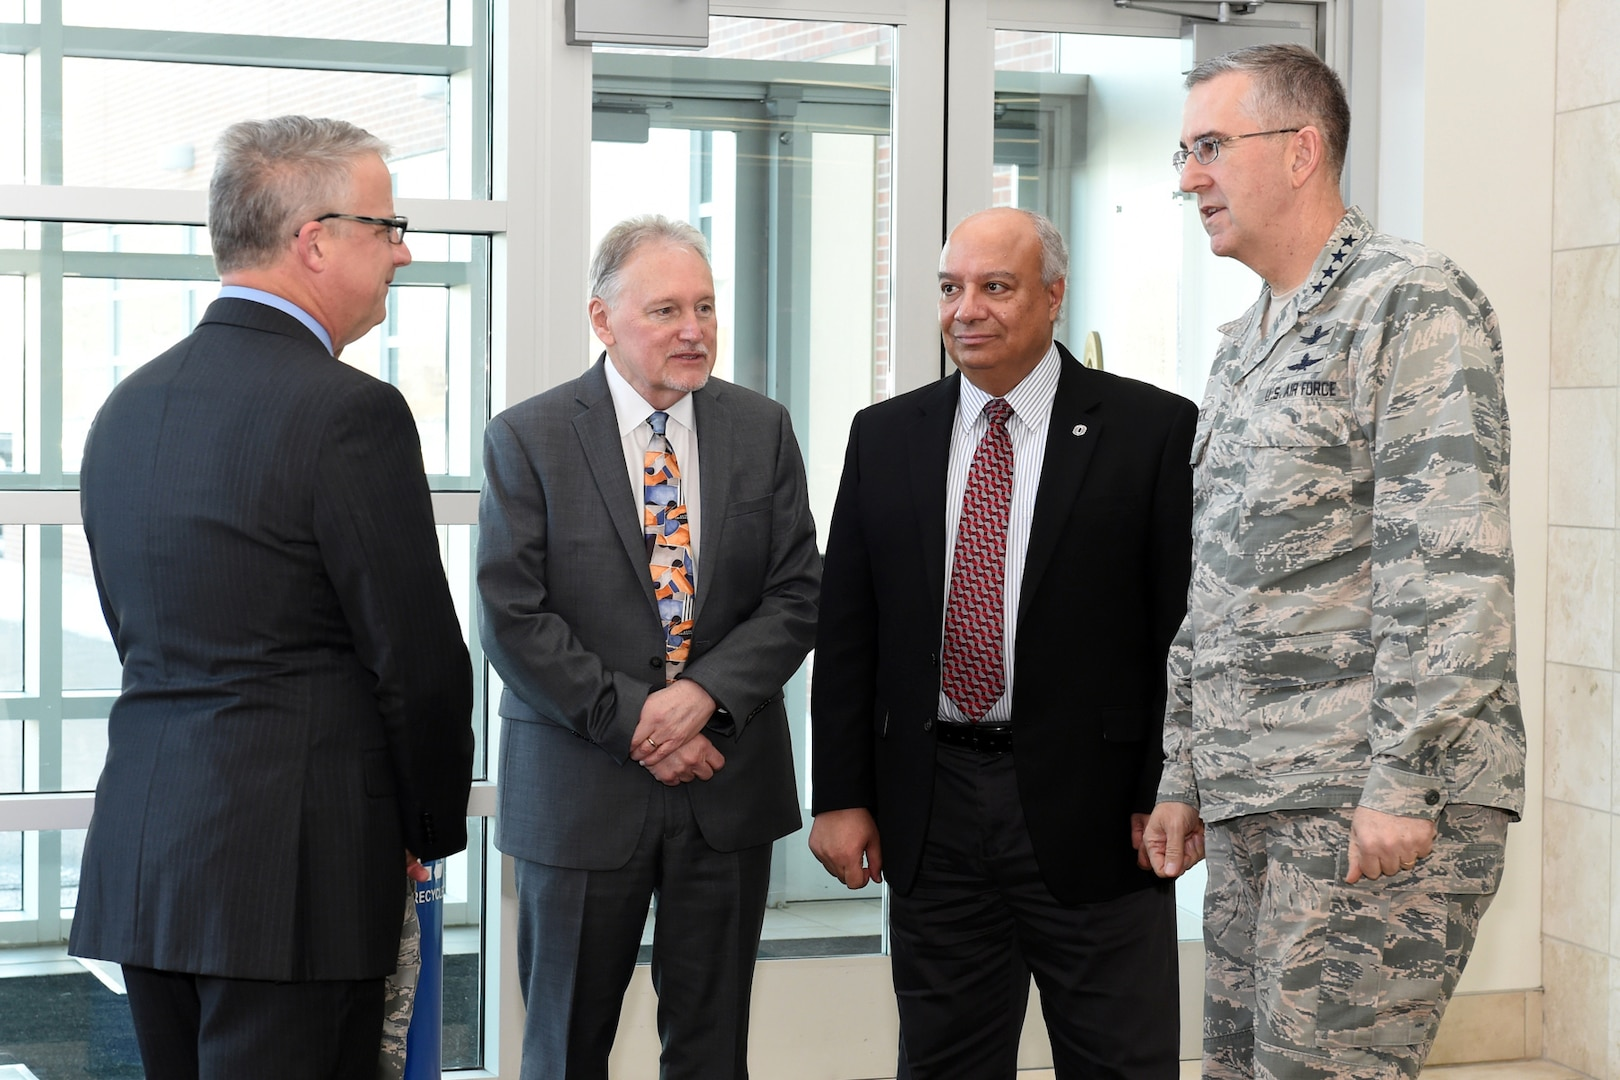 U.S. Air Force Gen. John Hyten (right), commander of U.S. Strategic Command (USSTRATCOM), met with, from left, Scott Snyder, University of Nebraska Omaha (UNO) vice chancellor for research; Louis Pol, UNO dean of the college of business administration, Hesham Ali, UNO dean of the college of information science & technology, prior to attending a brown-bag lunch with USSTRATCOM Strategic Leadership Fellows Program participants at UNO's Mammel Hall, Jan. 24, 2017. The fellows program is designed to develop high-potential civilian leaders in support of USSTRATCOM organizational transformation, broaden mission awareness, and develop leadership skills. USSTRATCOM has global responsibilities assigned through the Unified Command Plan that include strategic deterrence, nuclear operations, space operations, joint electromagnetic spectrum operations, global strike, missile defense, and analysis and targeting.